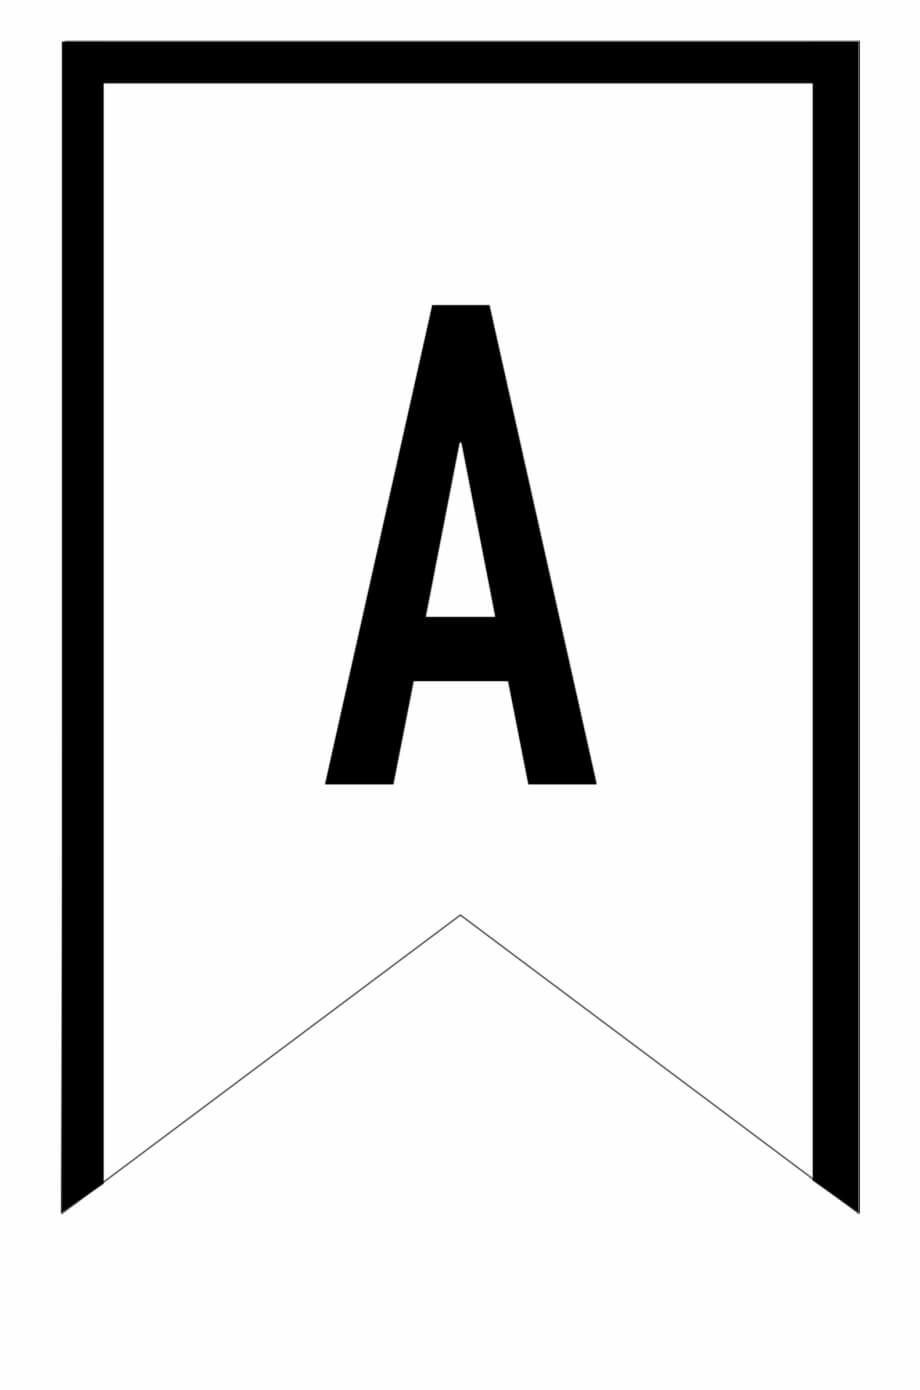 Banner Templates Free Printable Abc Letters - Printable Inside Letter Templates For Banners